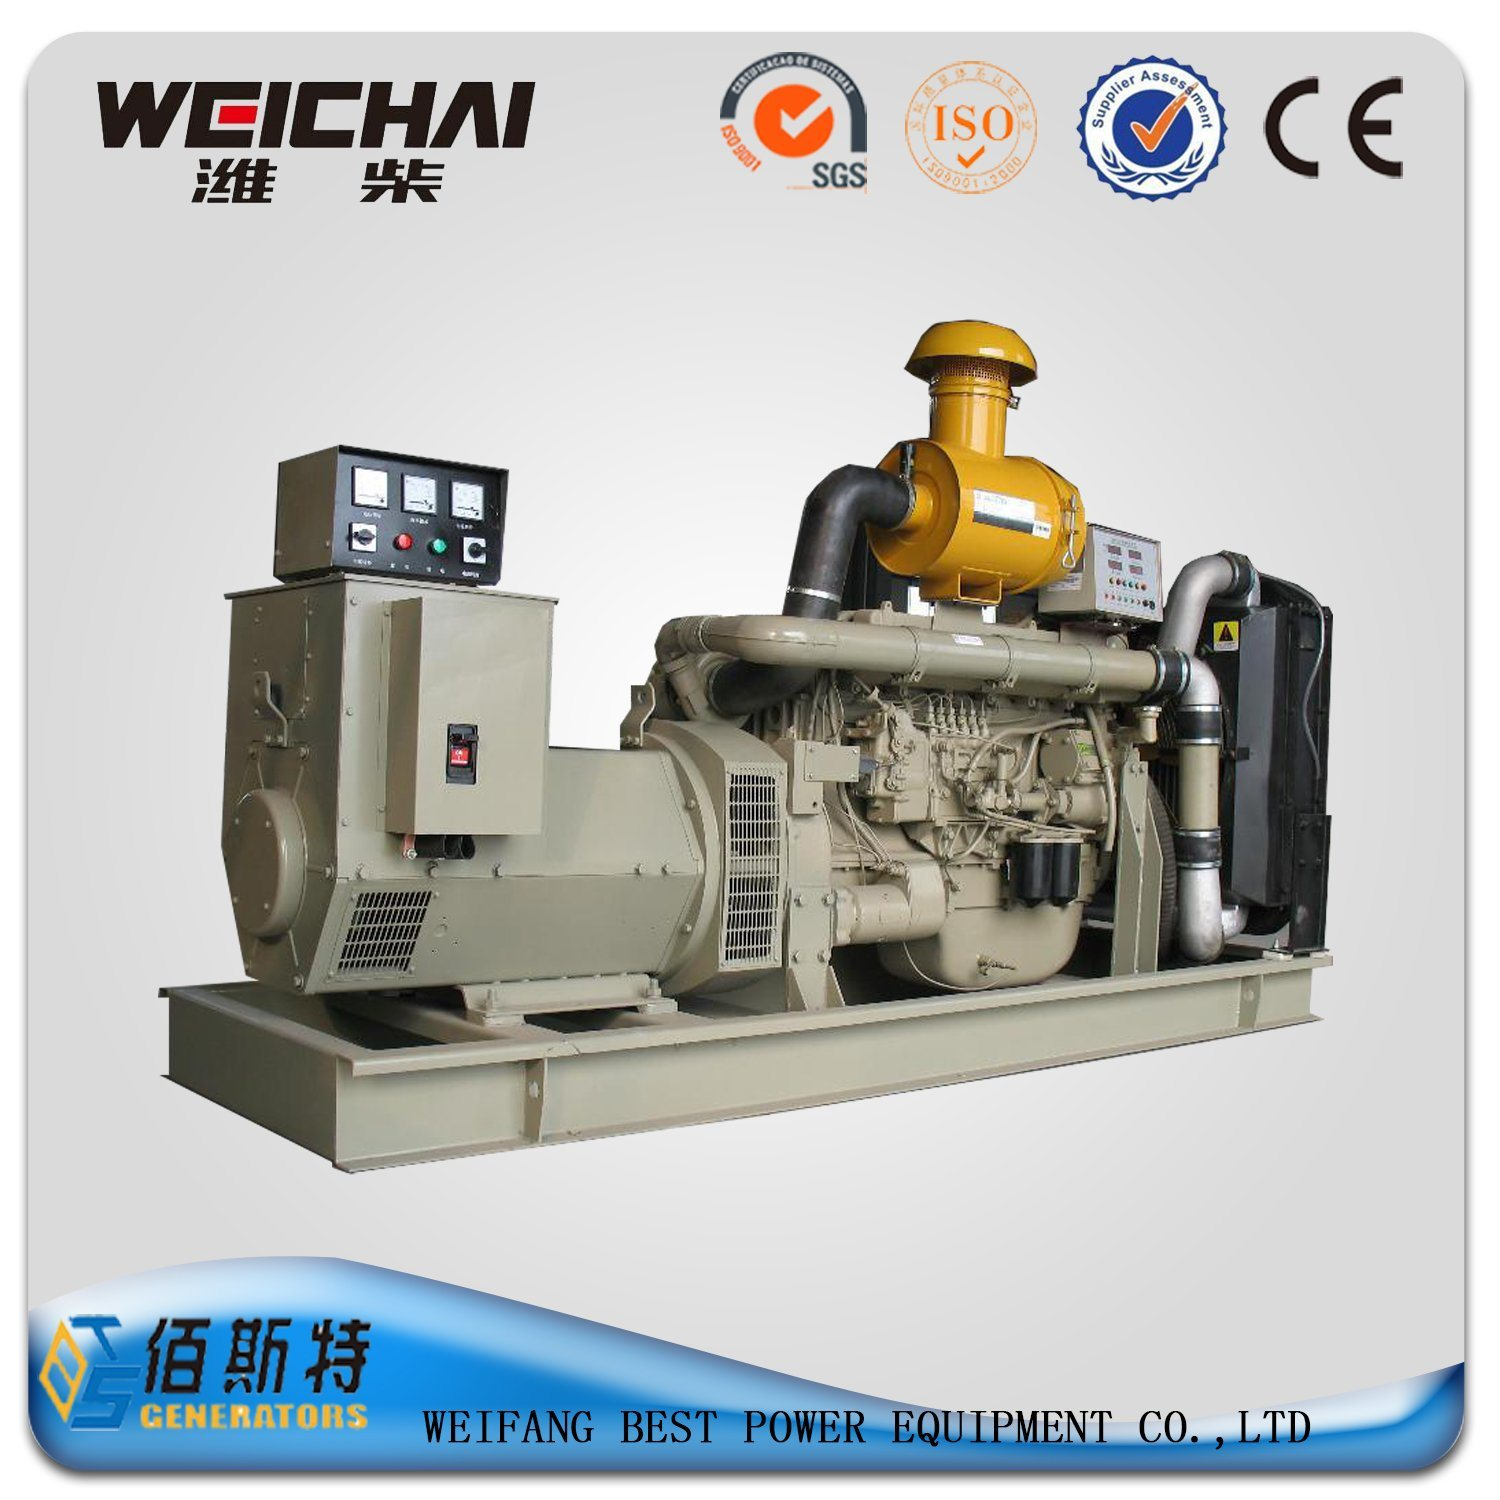 China Weifang Diesel Engine 95kVA 75kw Small Power Diesel